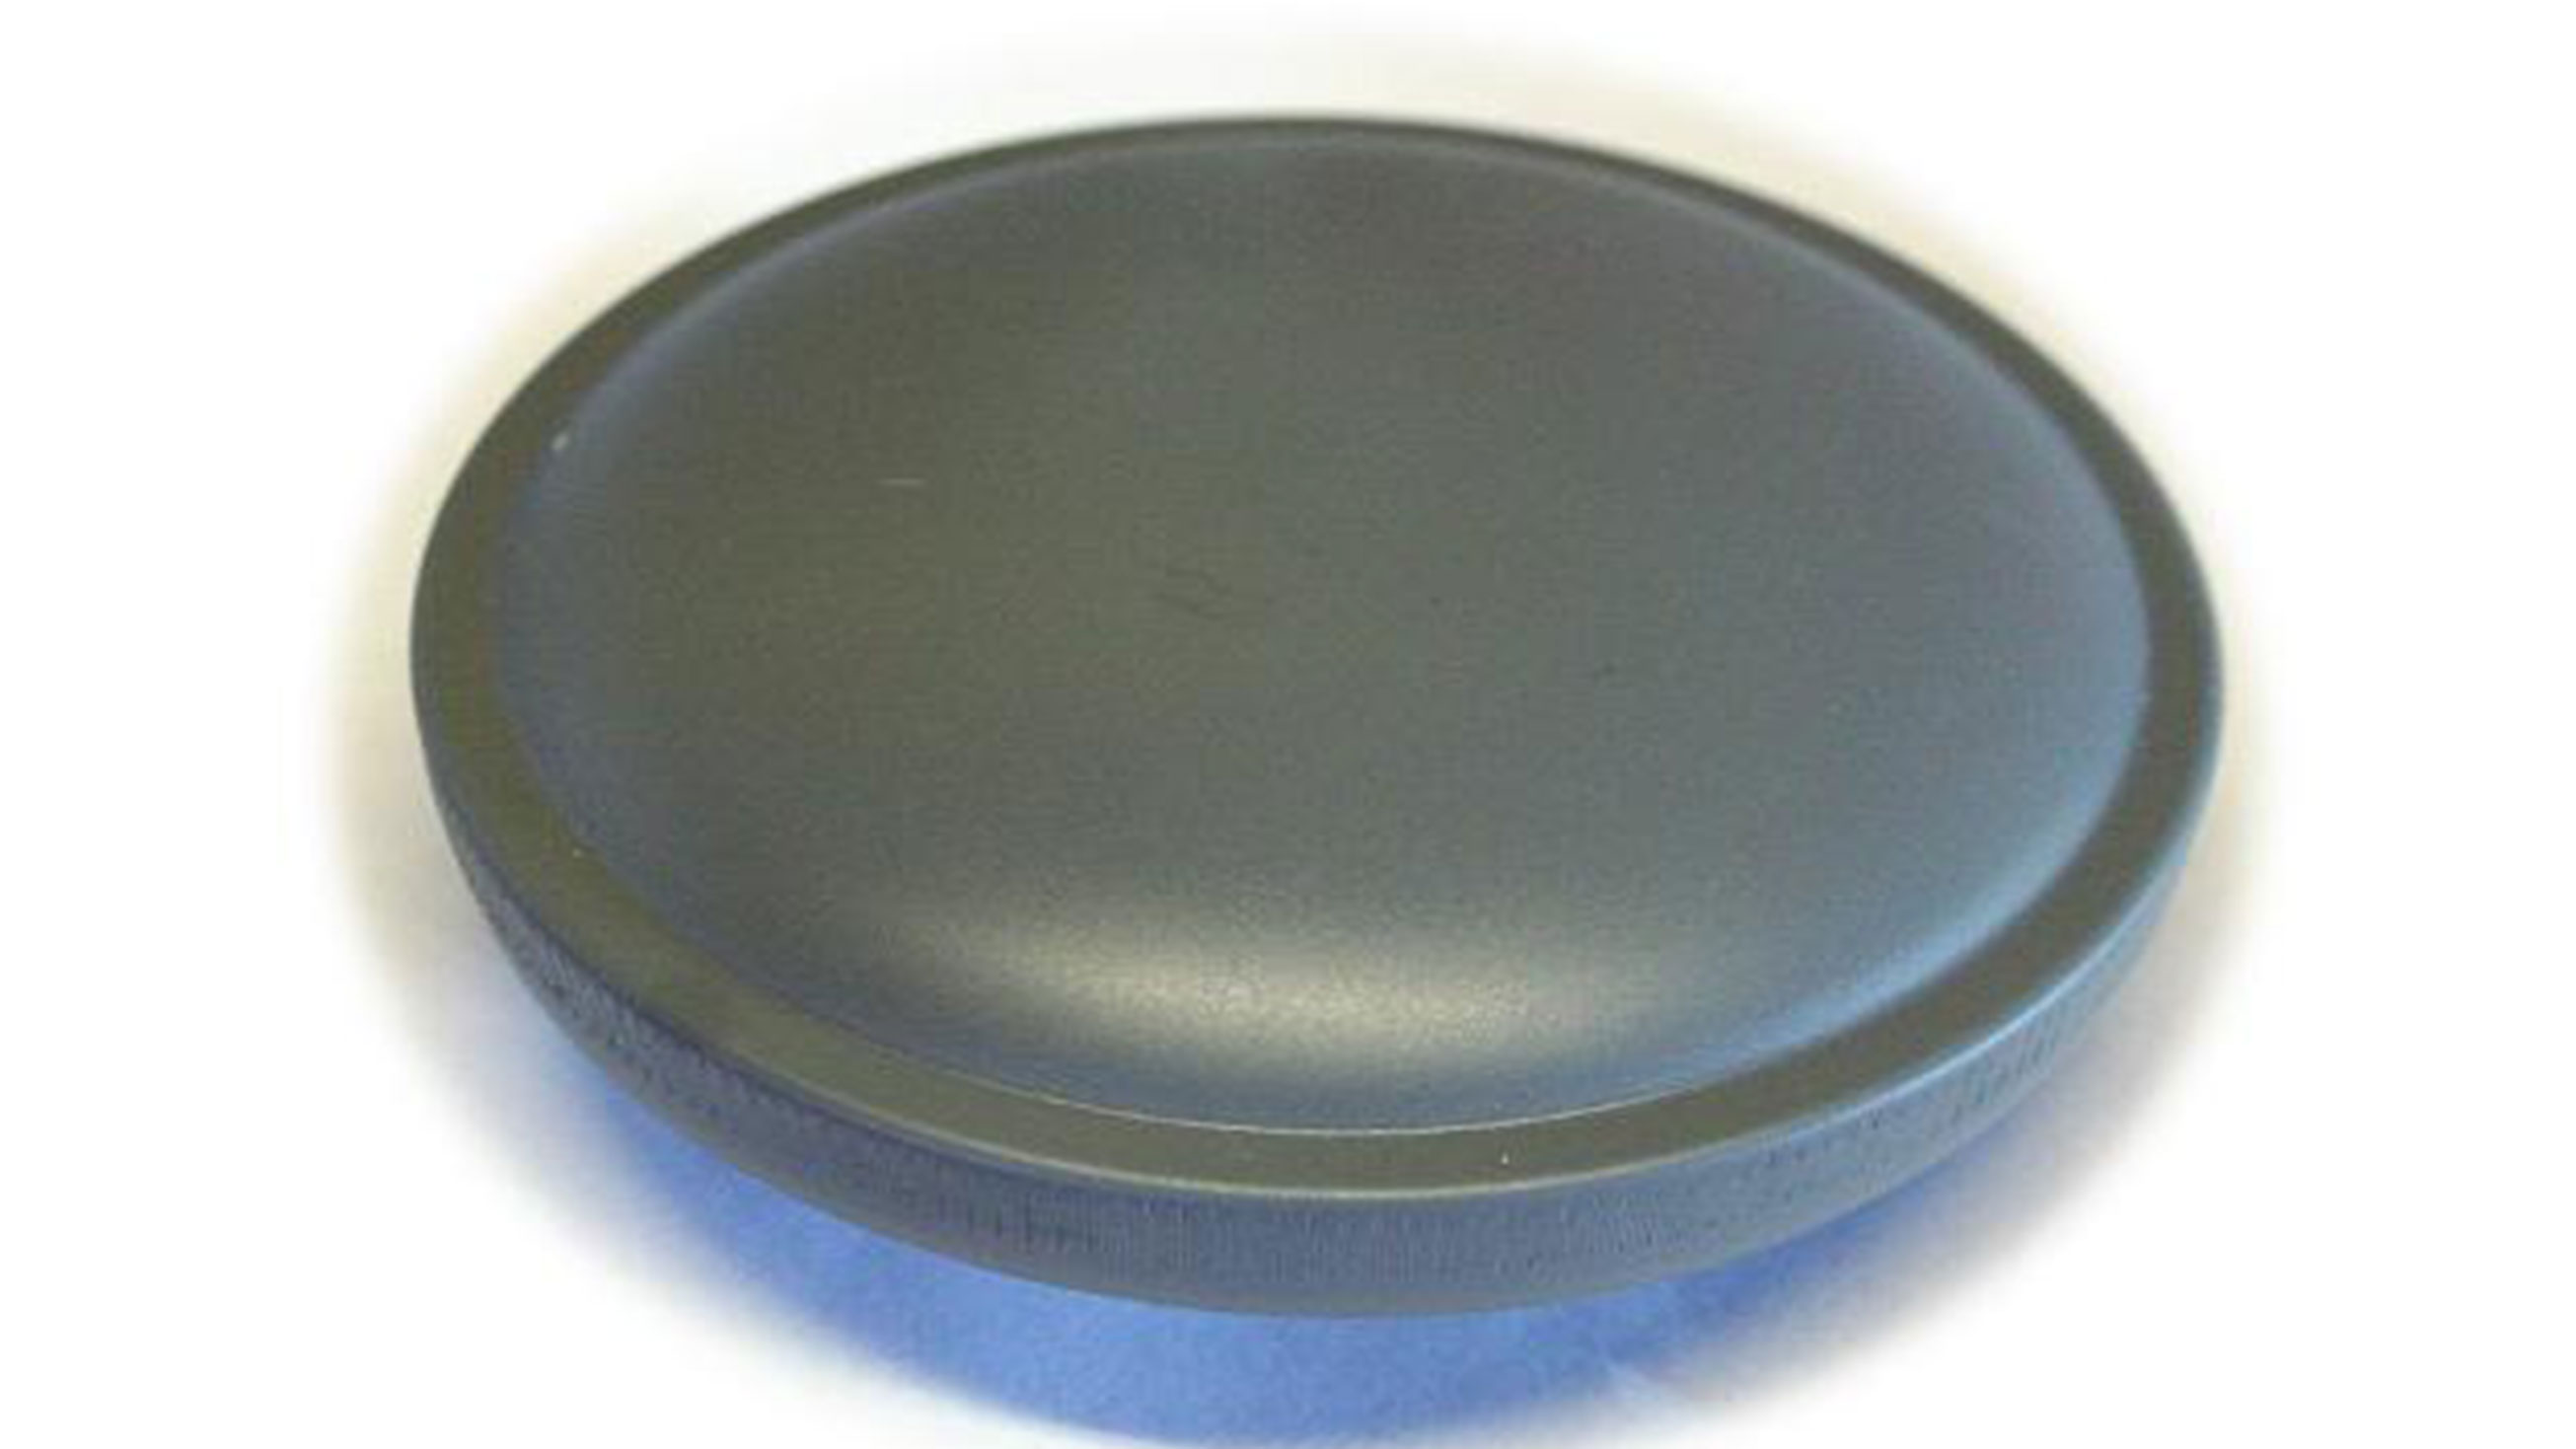 OE Style Long Reach Fuel Cap - Main or Auxiliary